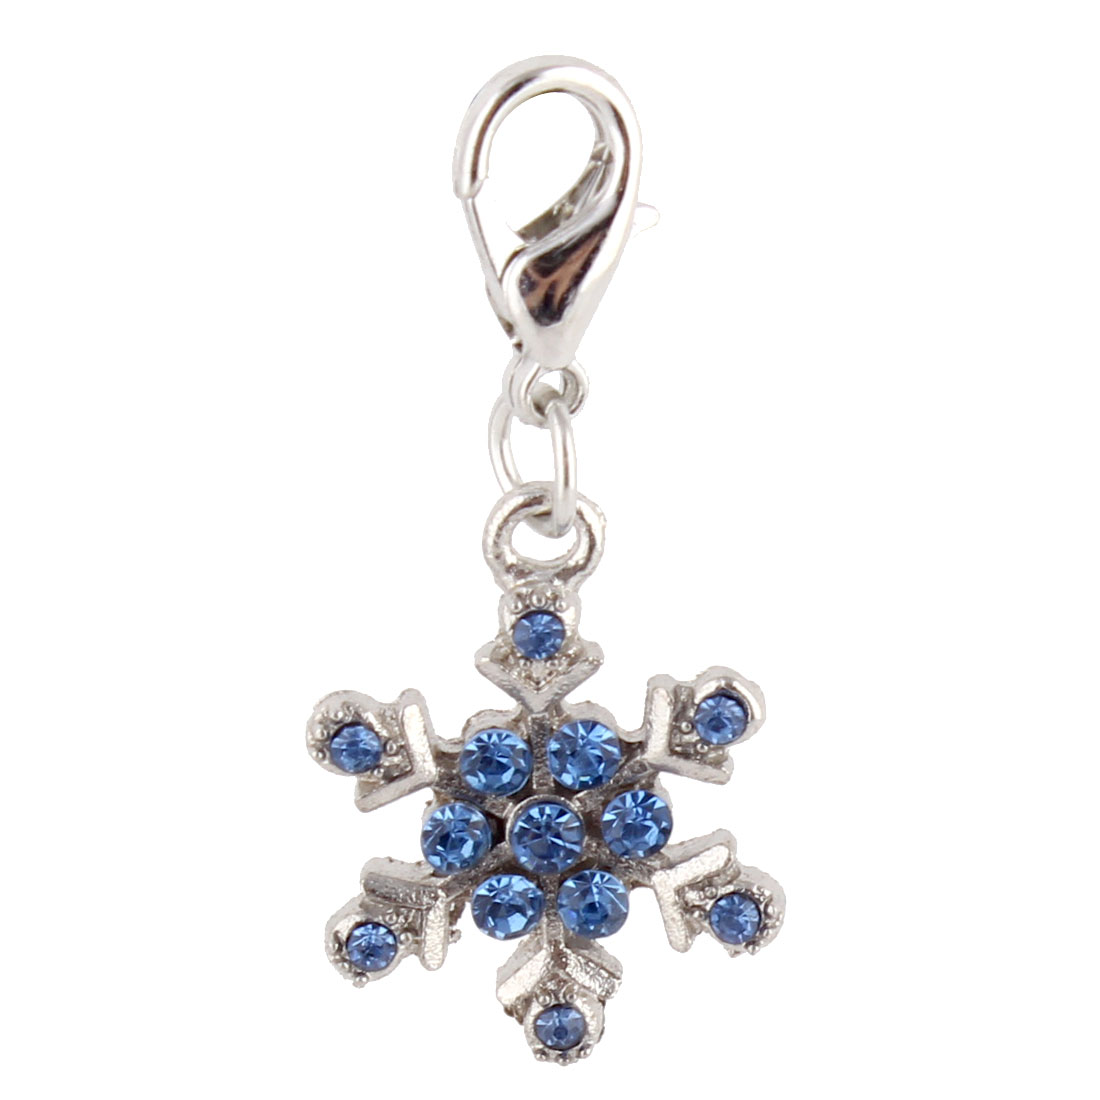 Pet Dog Metal Snowflake Shaped Rhinestone Inlaid Pendant Blue Silver Tone